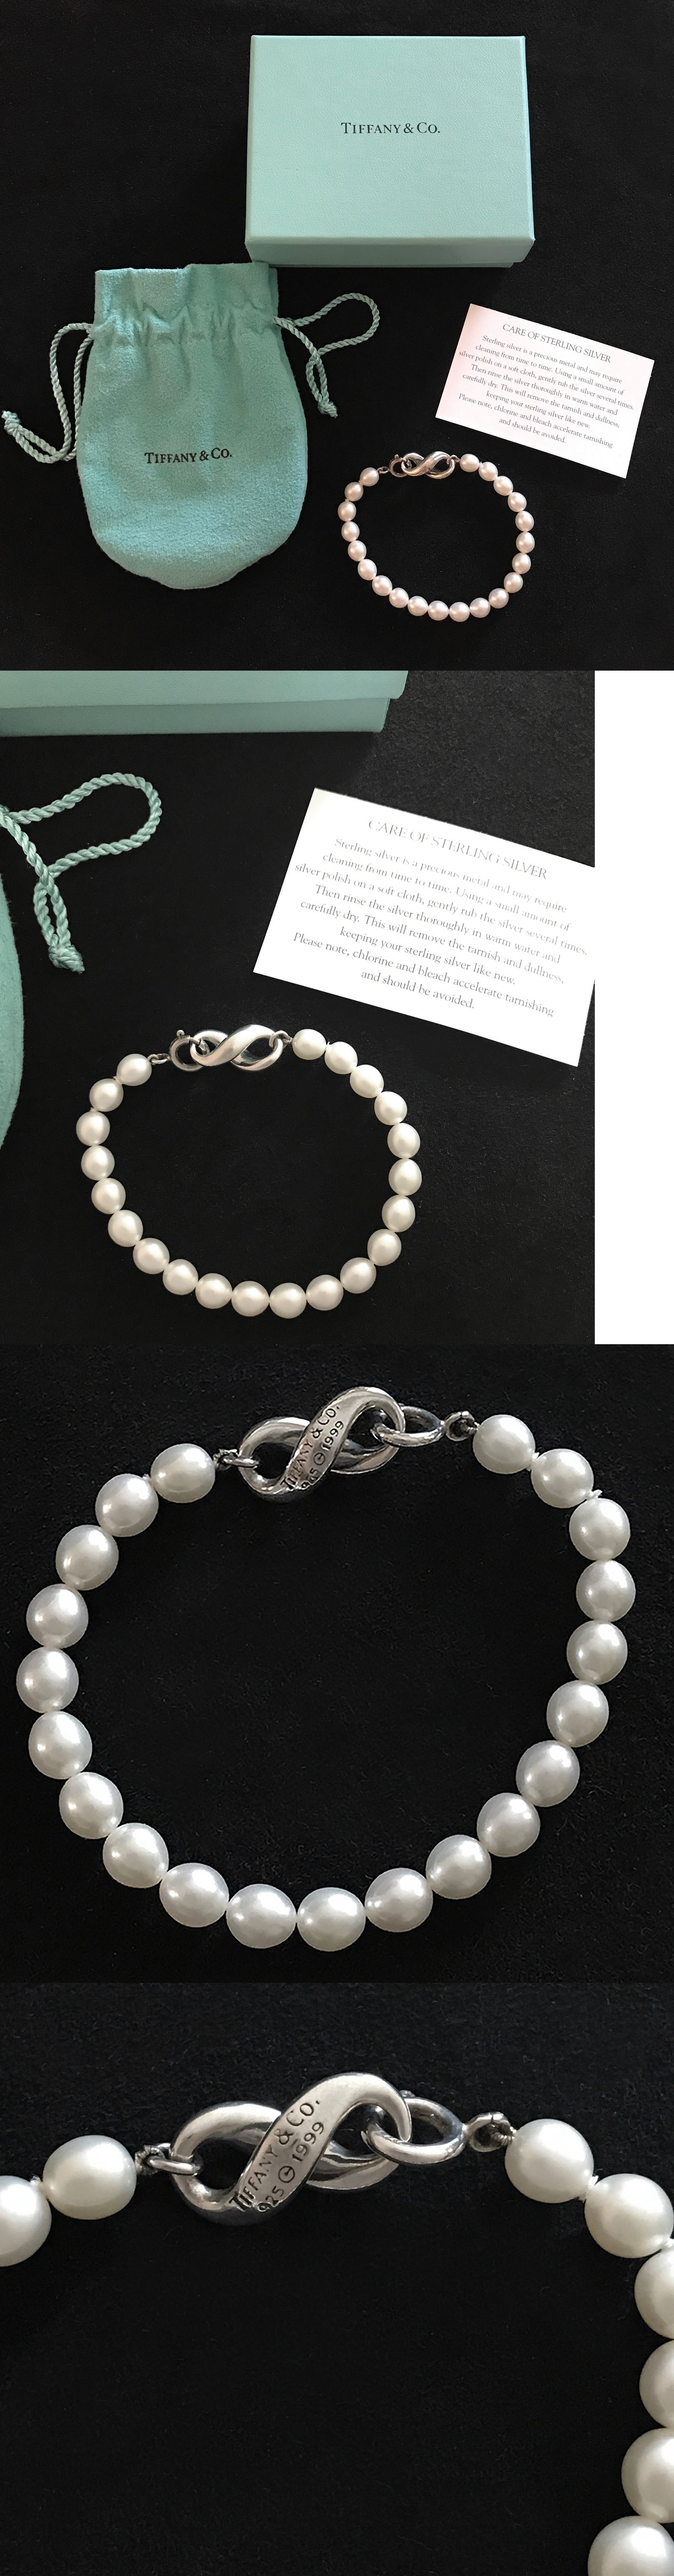 ae5898b5d Pearl 164316: Brand New Tiffany And Co. Infinity Pearl Bracelet With Sterling  Silver Clasp -> BUY IT NOW ONLY: $365 on eBay!